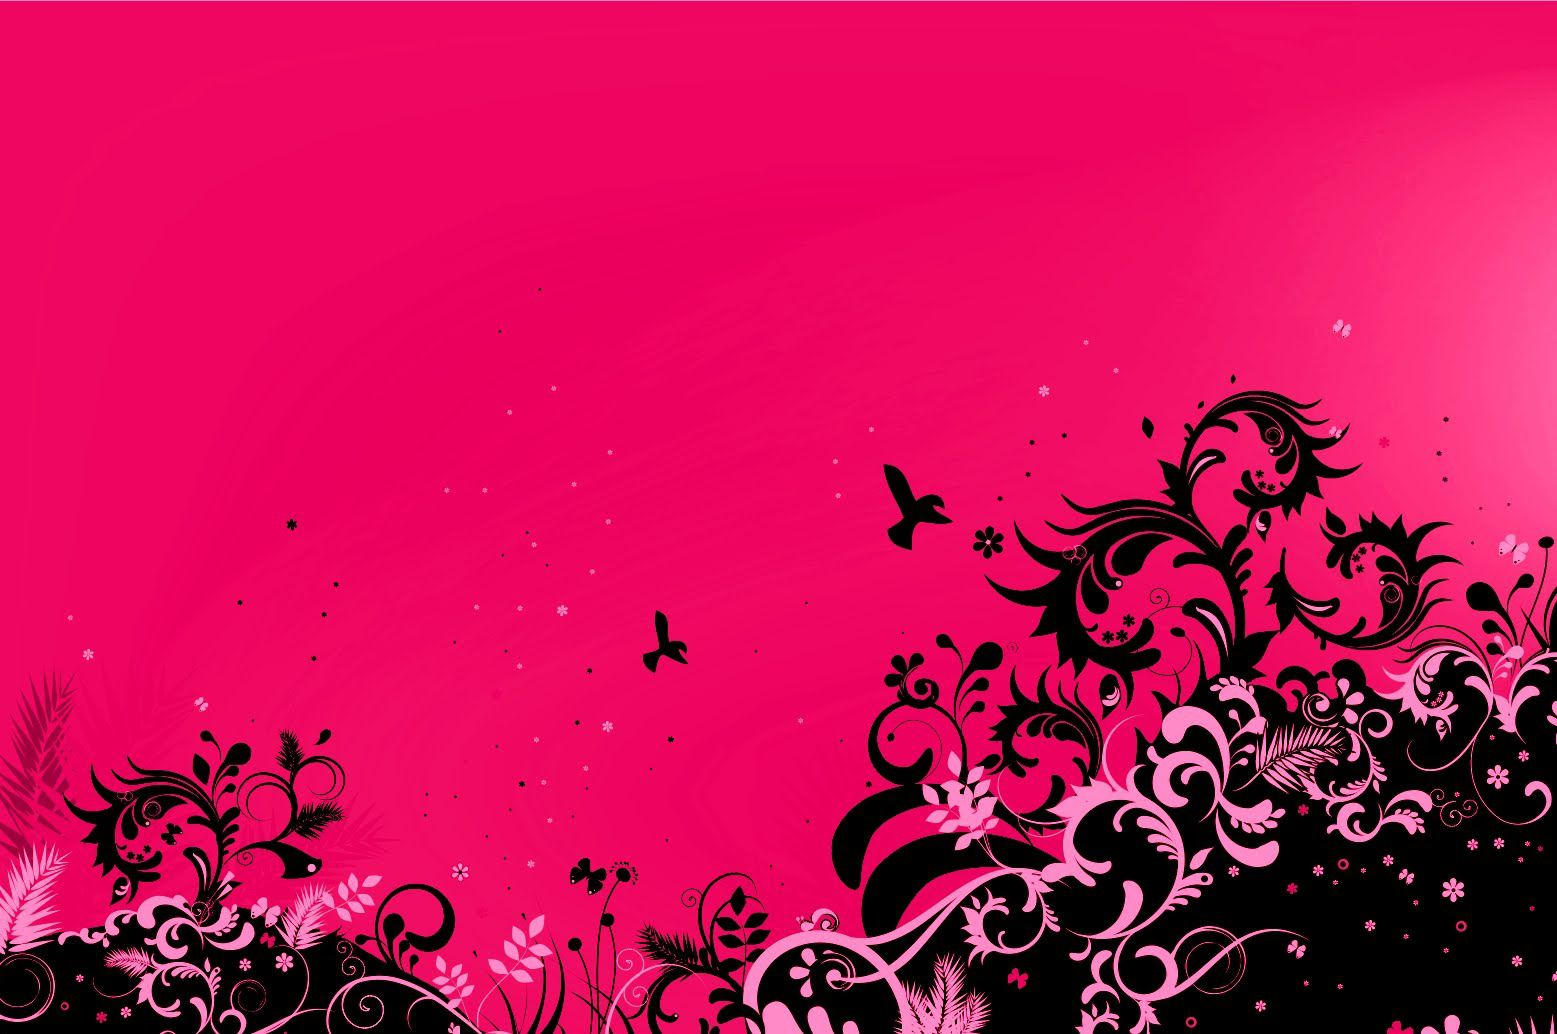 pink wallpaper and background image | 1557x1034 | id:467415